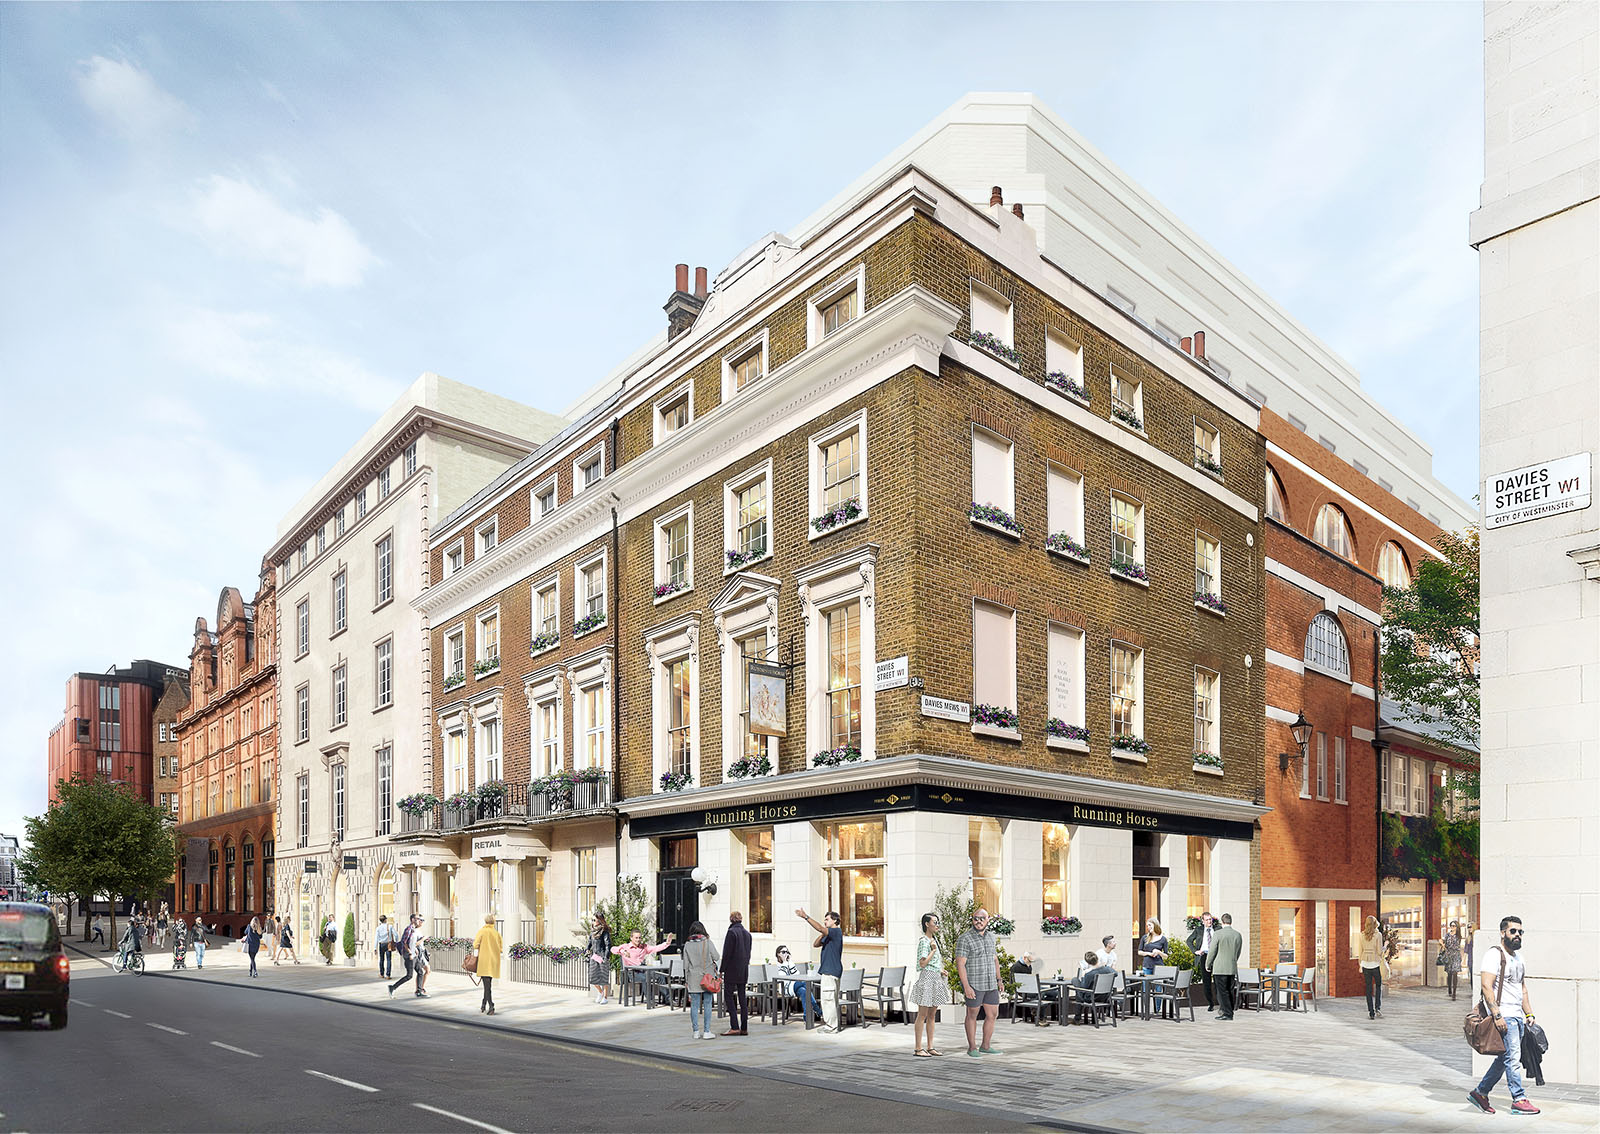 southmoltontriangle-cgi-july-daviesstreet-lrg.jpg